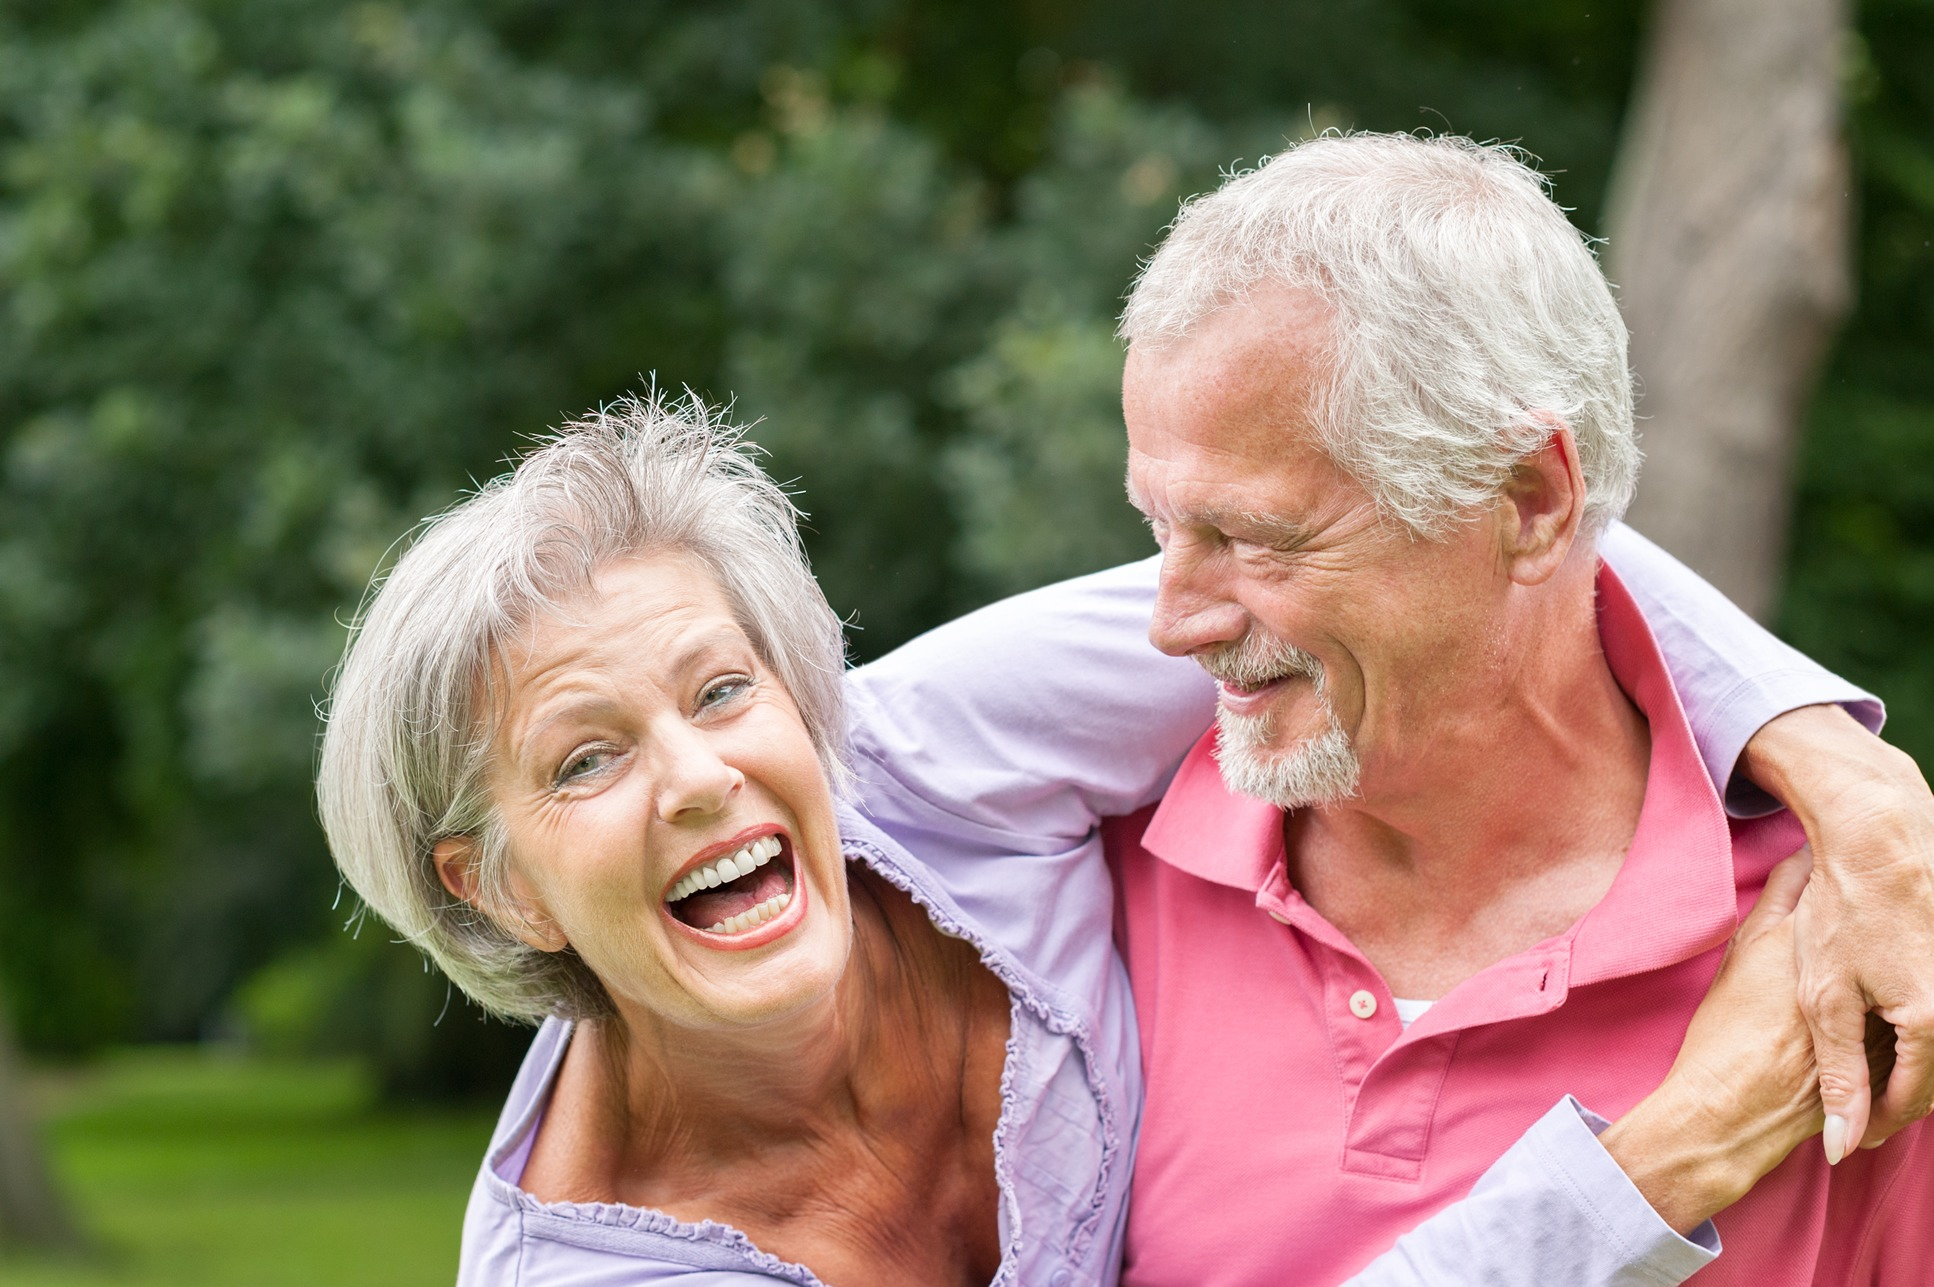 Over 60 Dating Couple